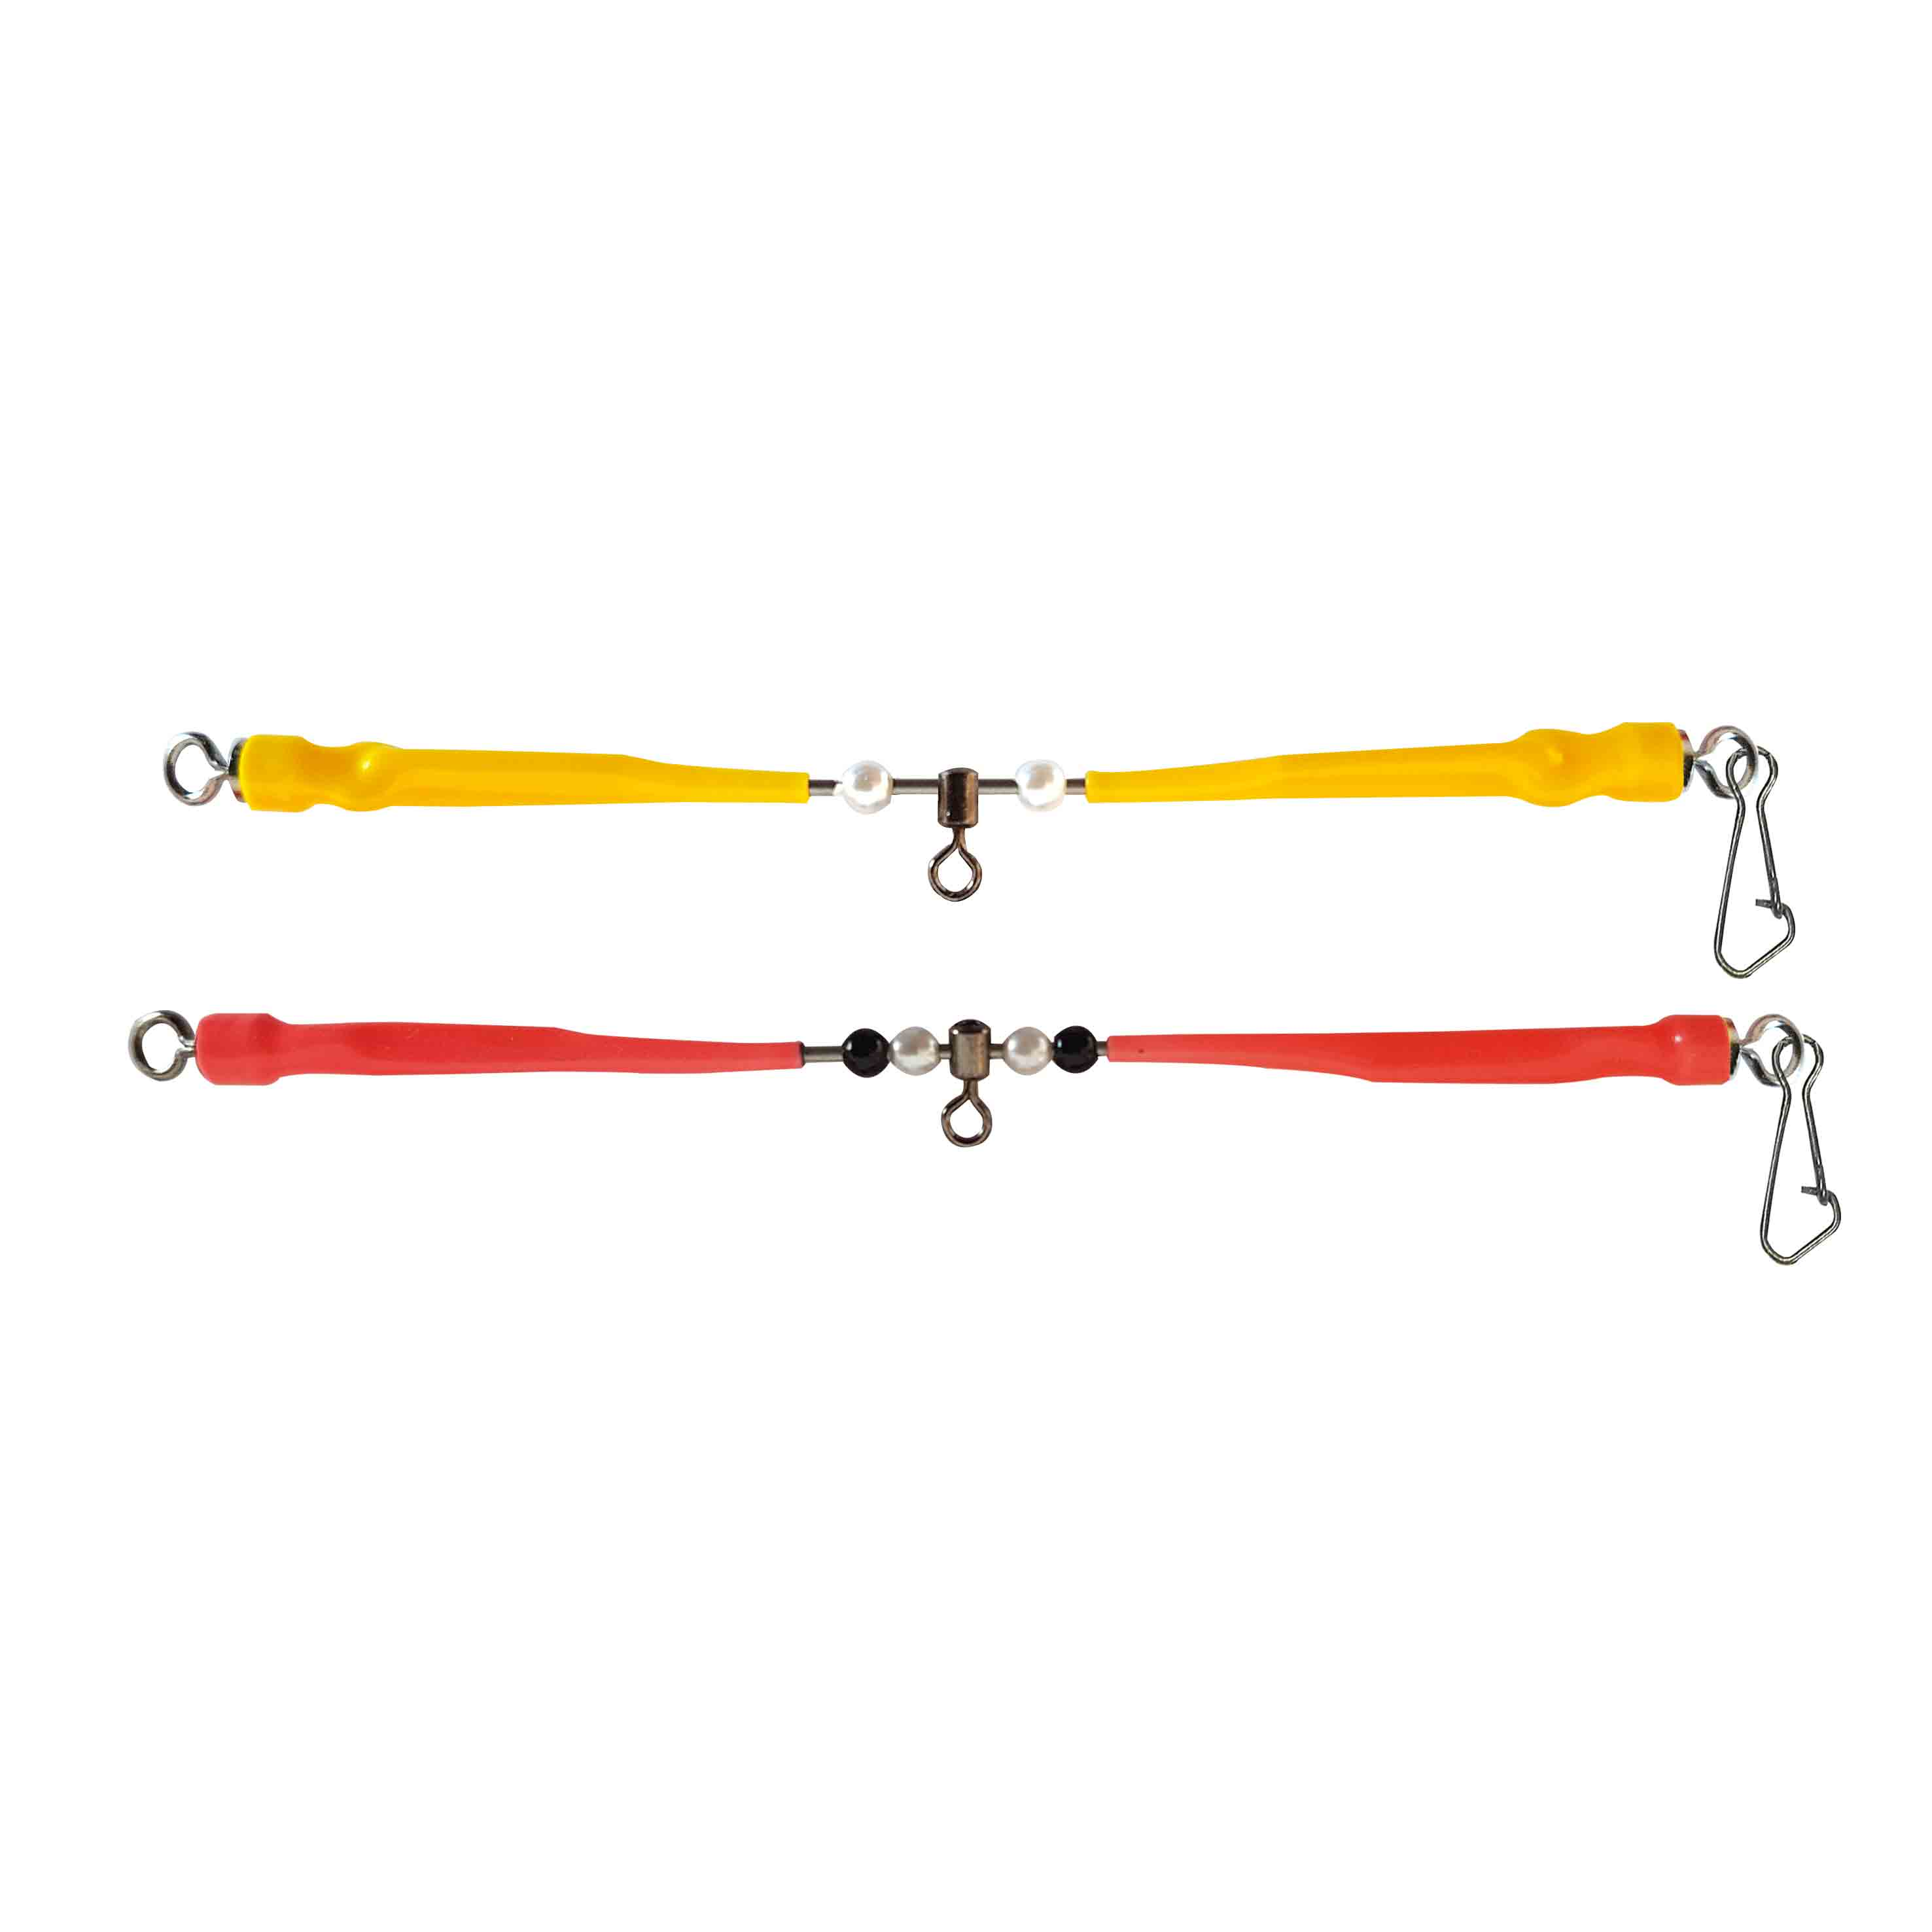 Bracciolo Surf Rolling e Hooked Snap mm. 85